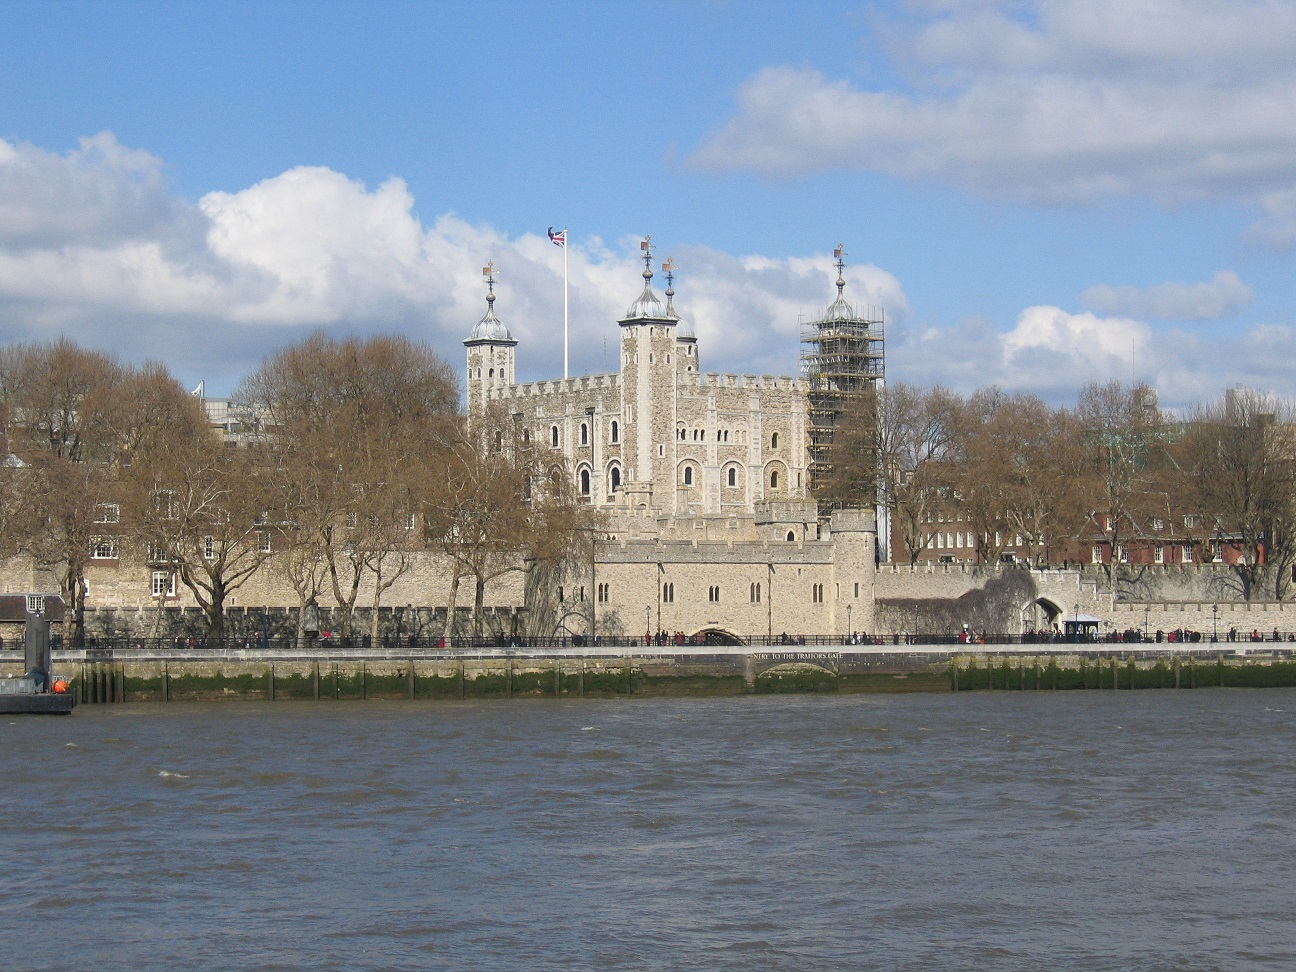 London Tower (White Tower)